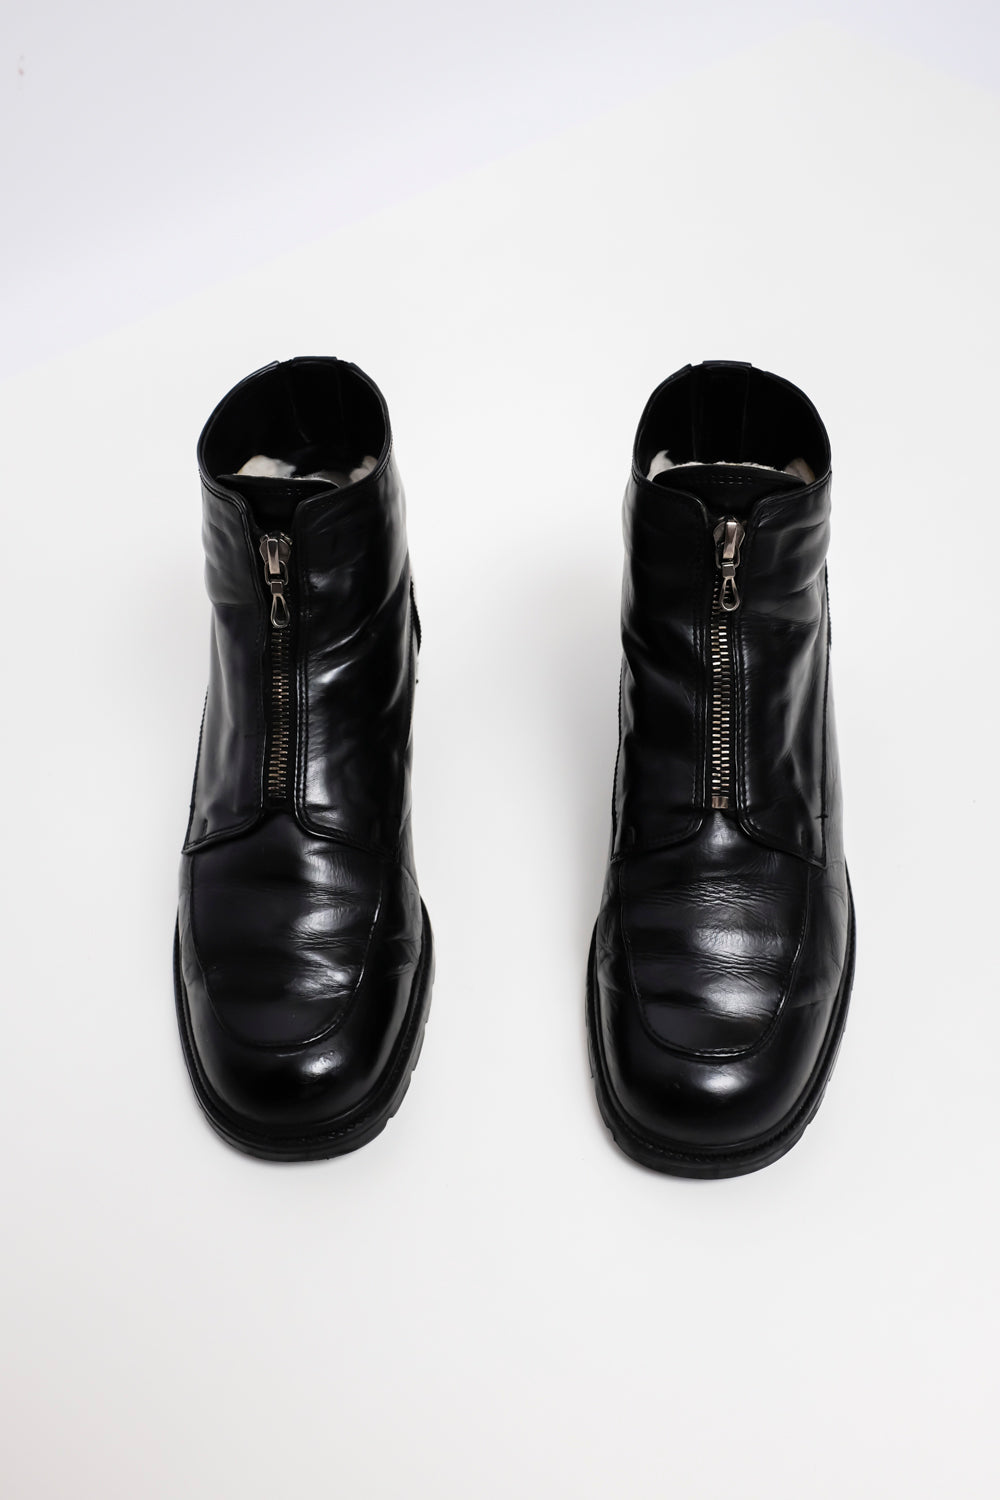 0019_WARM ZIP LEATHER BOOTS 39